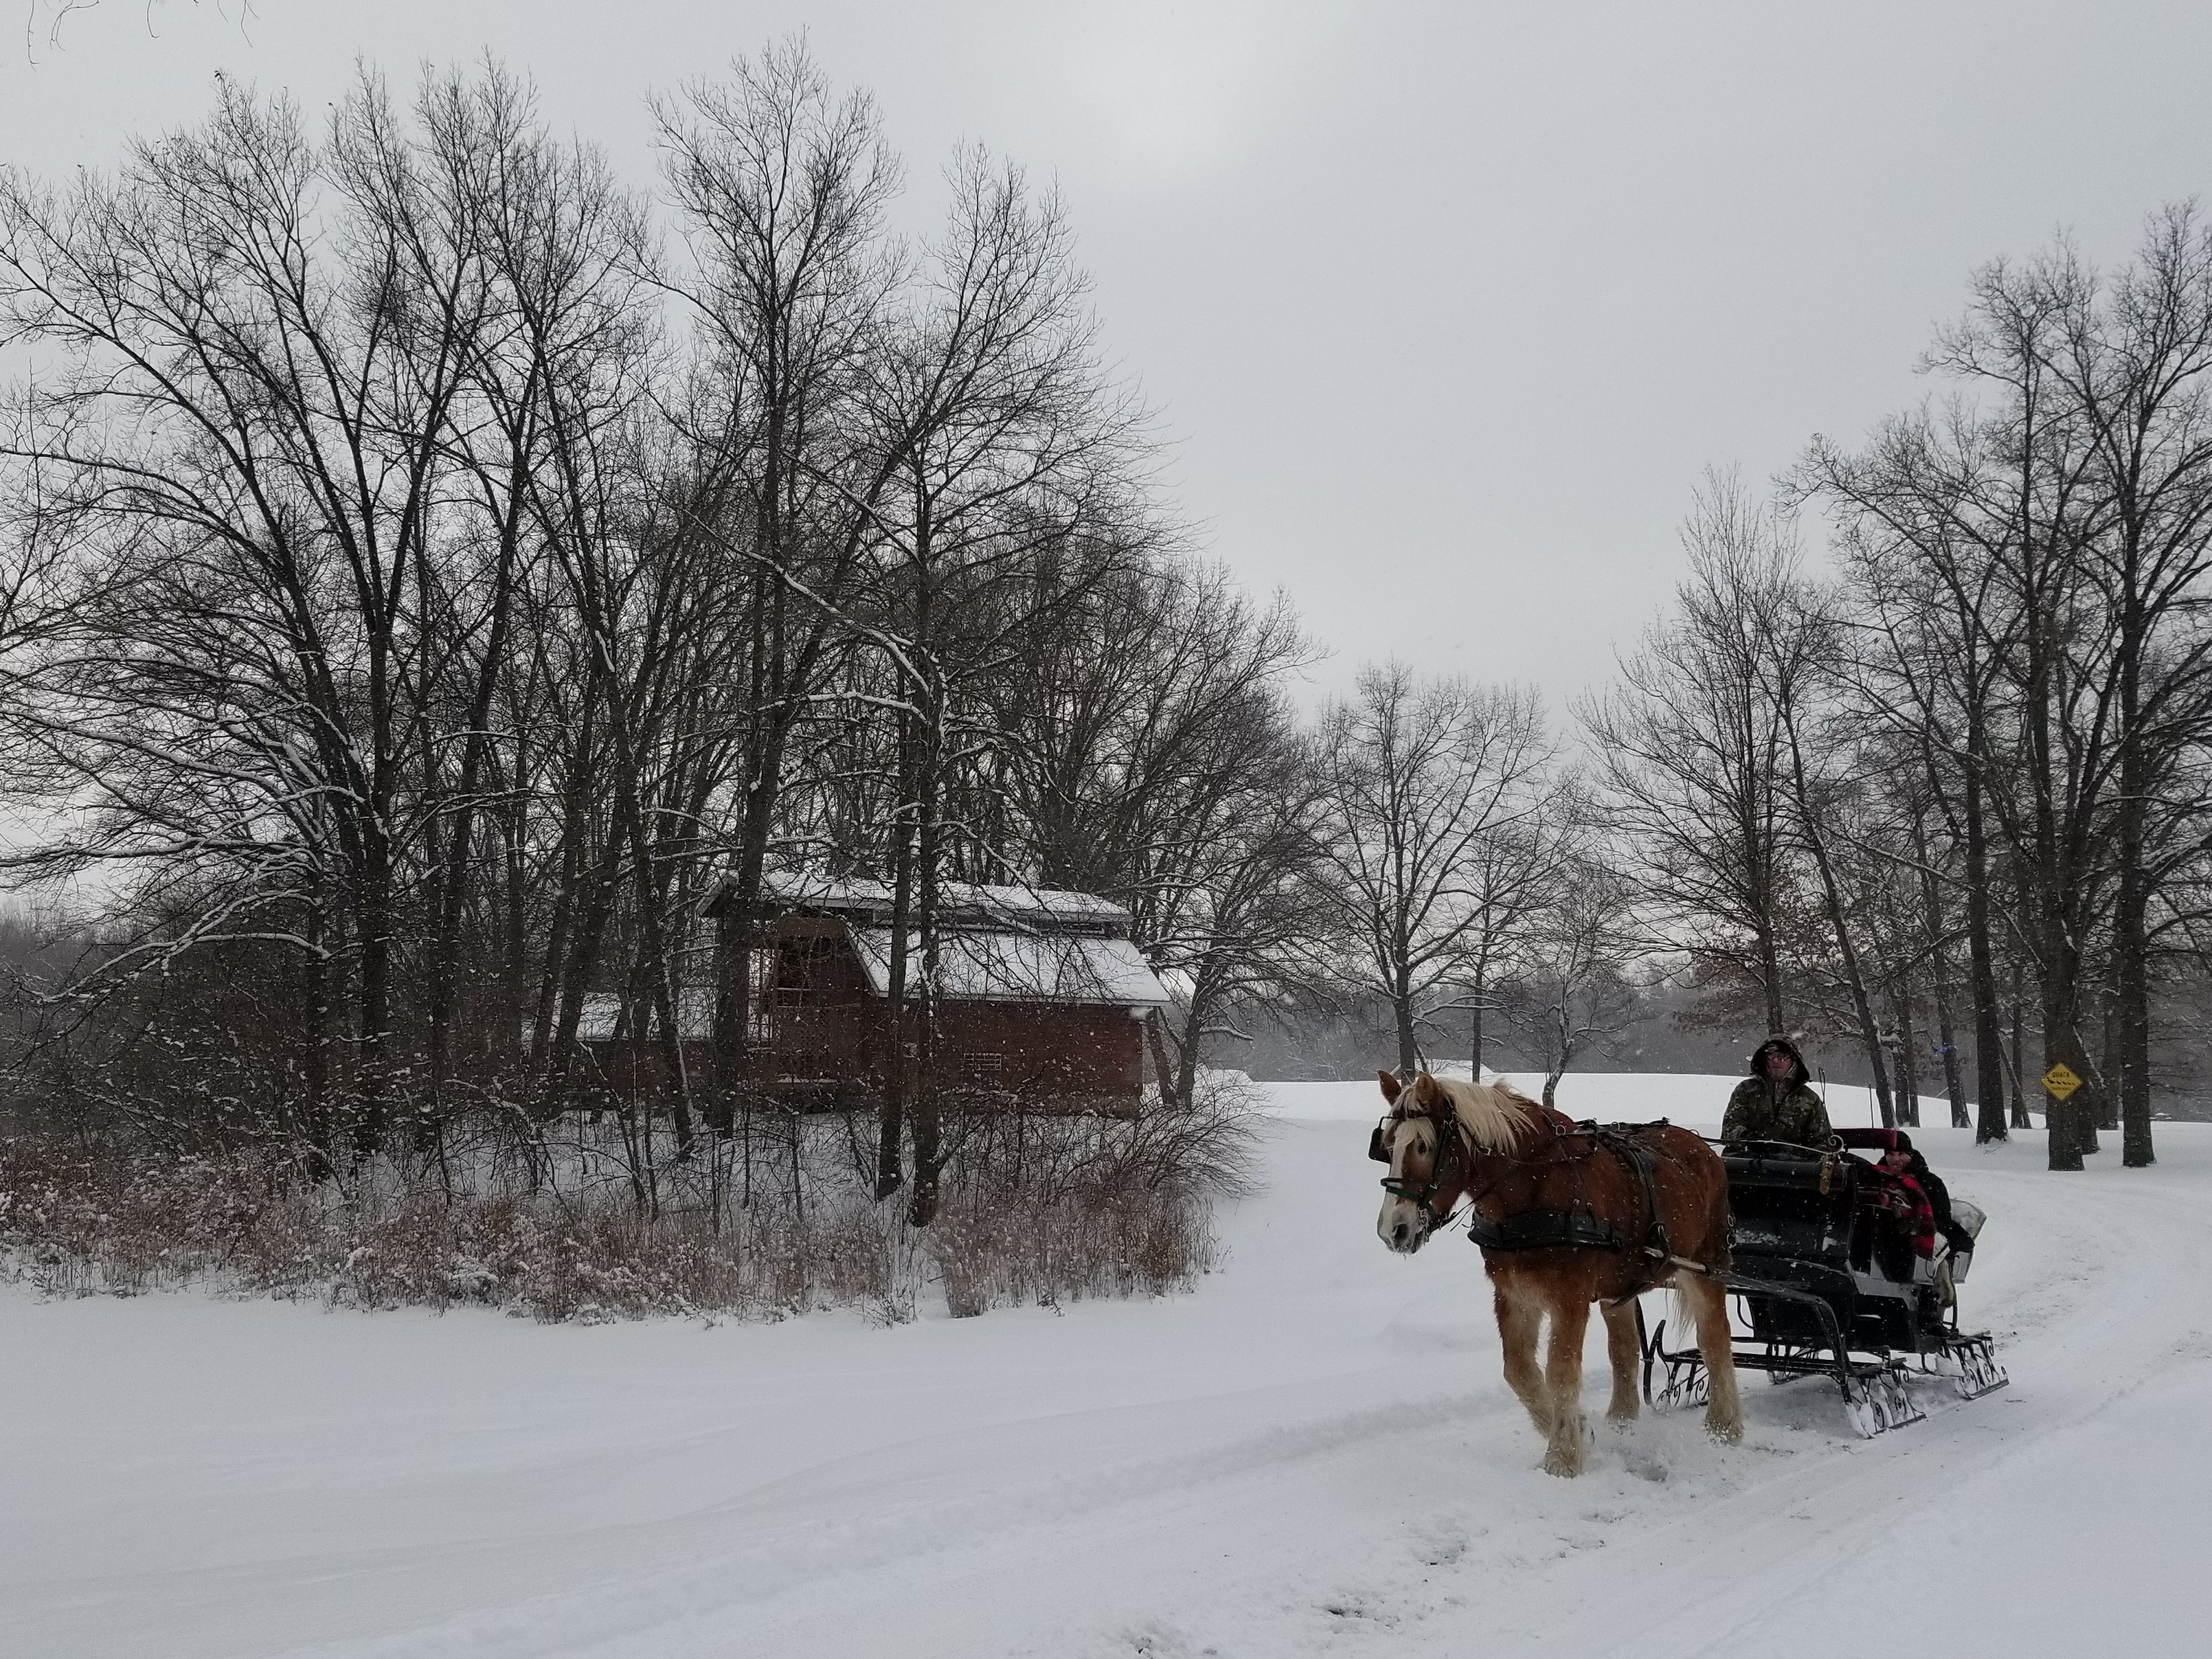 A horse drawn carriage going through the snow.